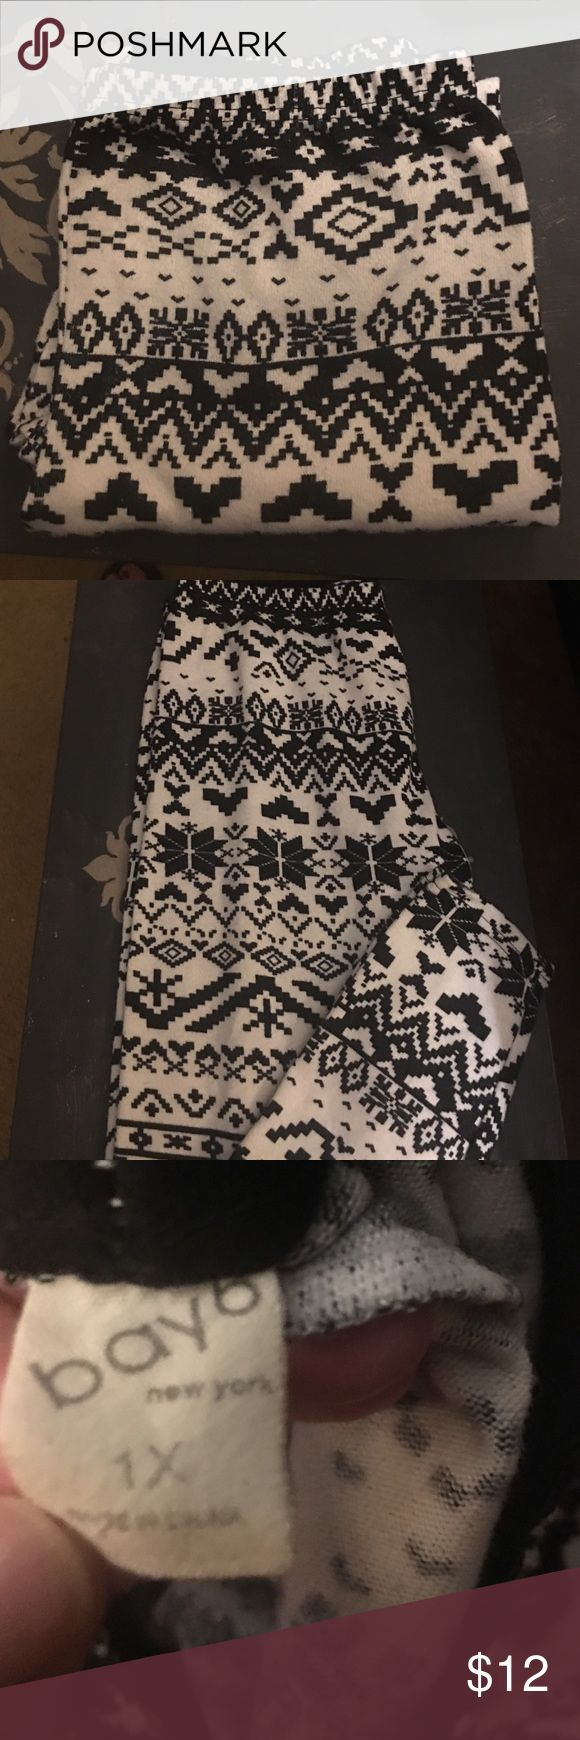 Cute black & white leggings tights Aztecs Tag says 1X but I would prefer you get something you can actually wear so these would fit probably an adult small to medium Pants Leggings